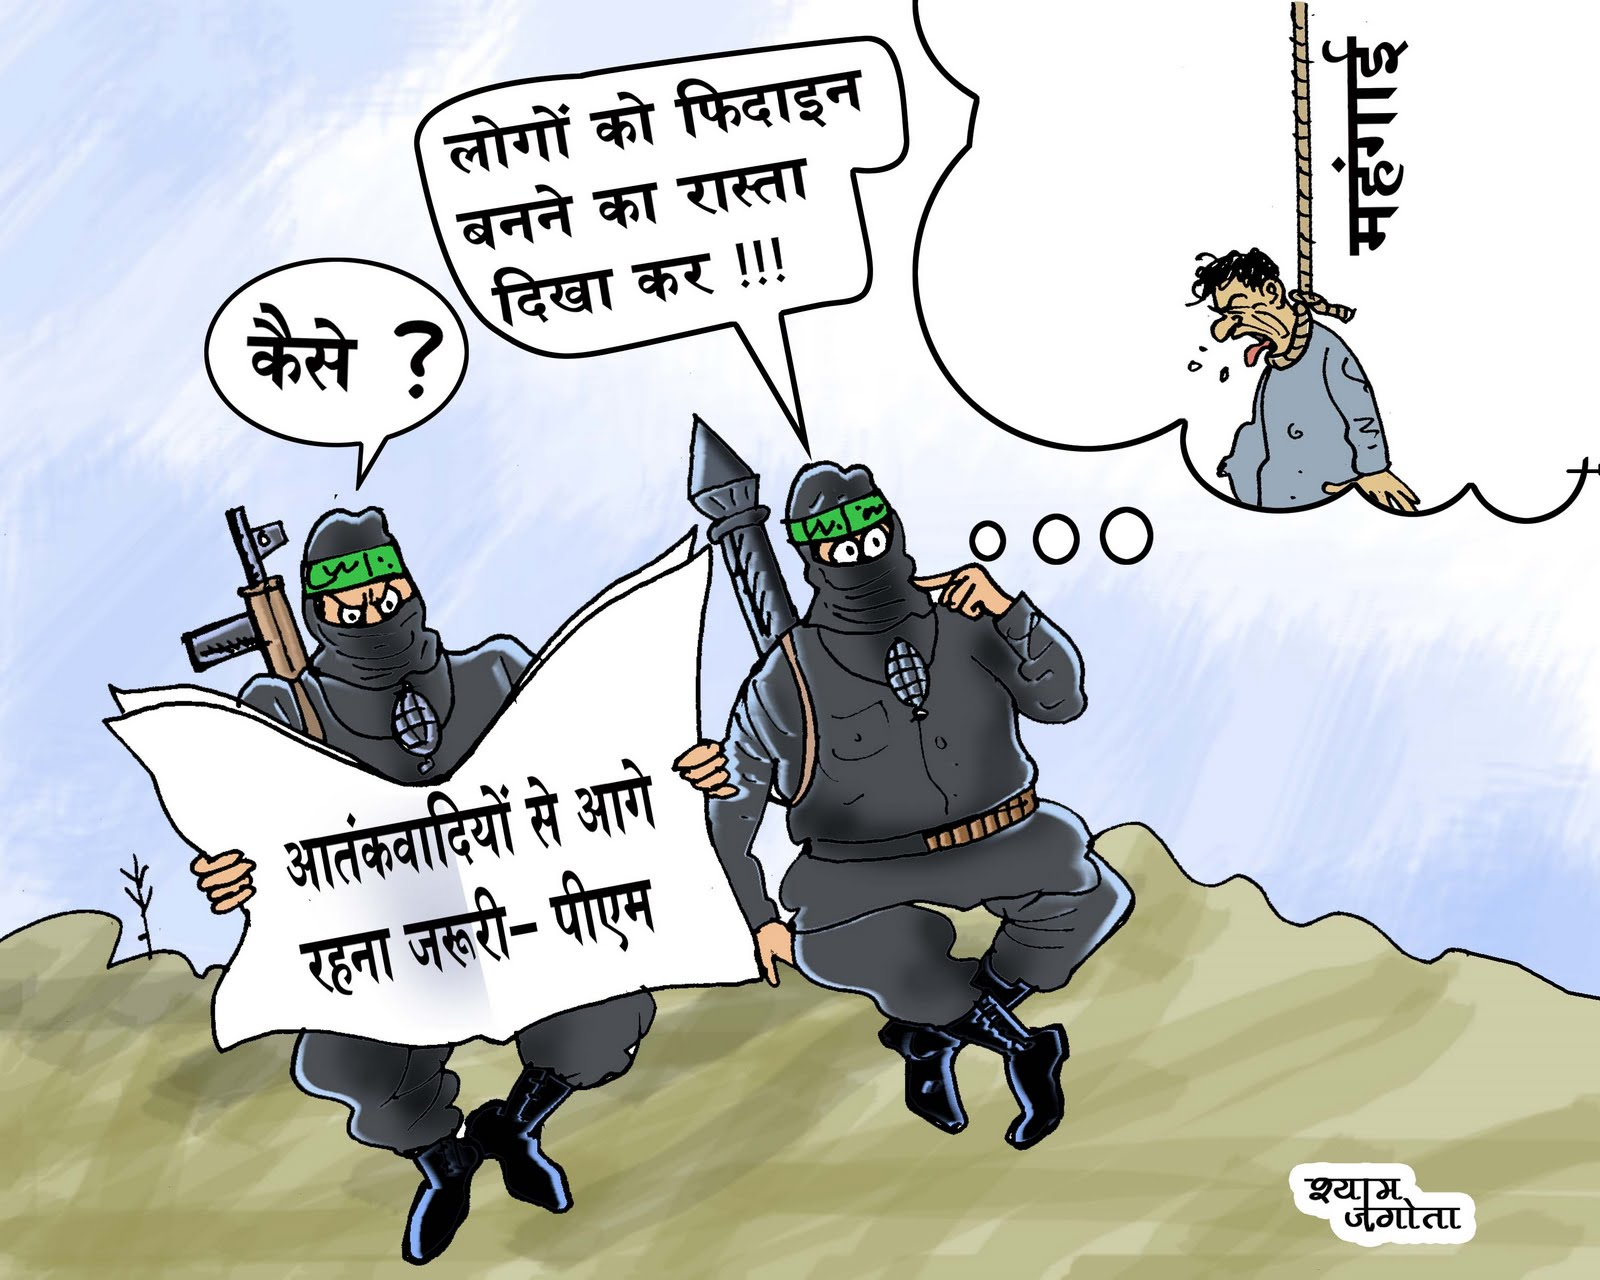 Facebook India Pictures Funny Indian Political Cartoons Pics